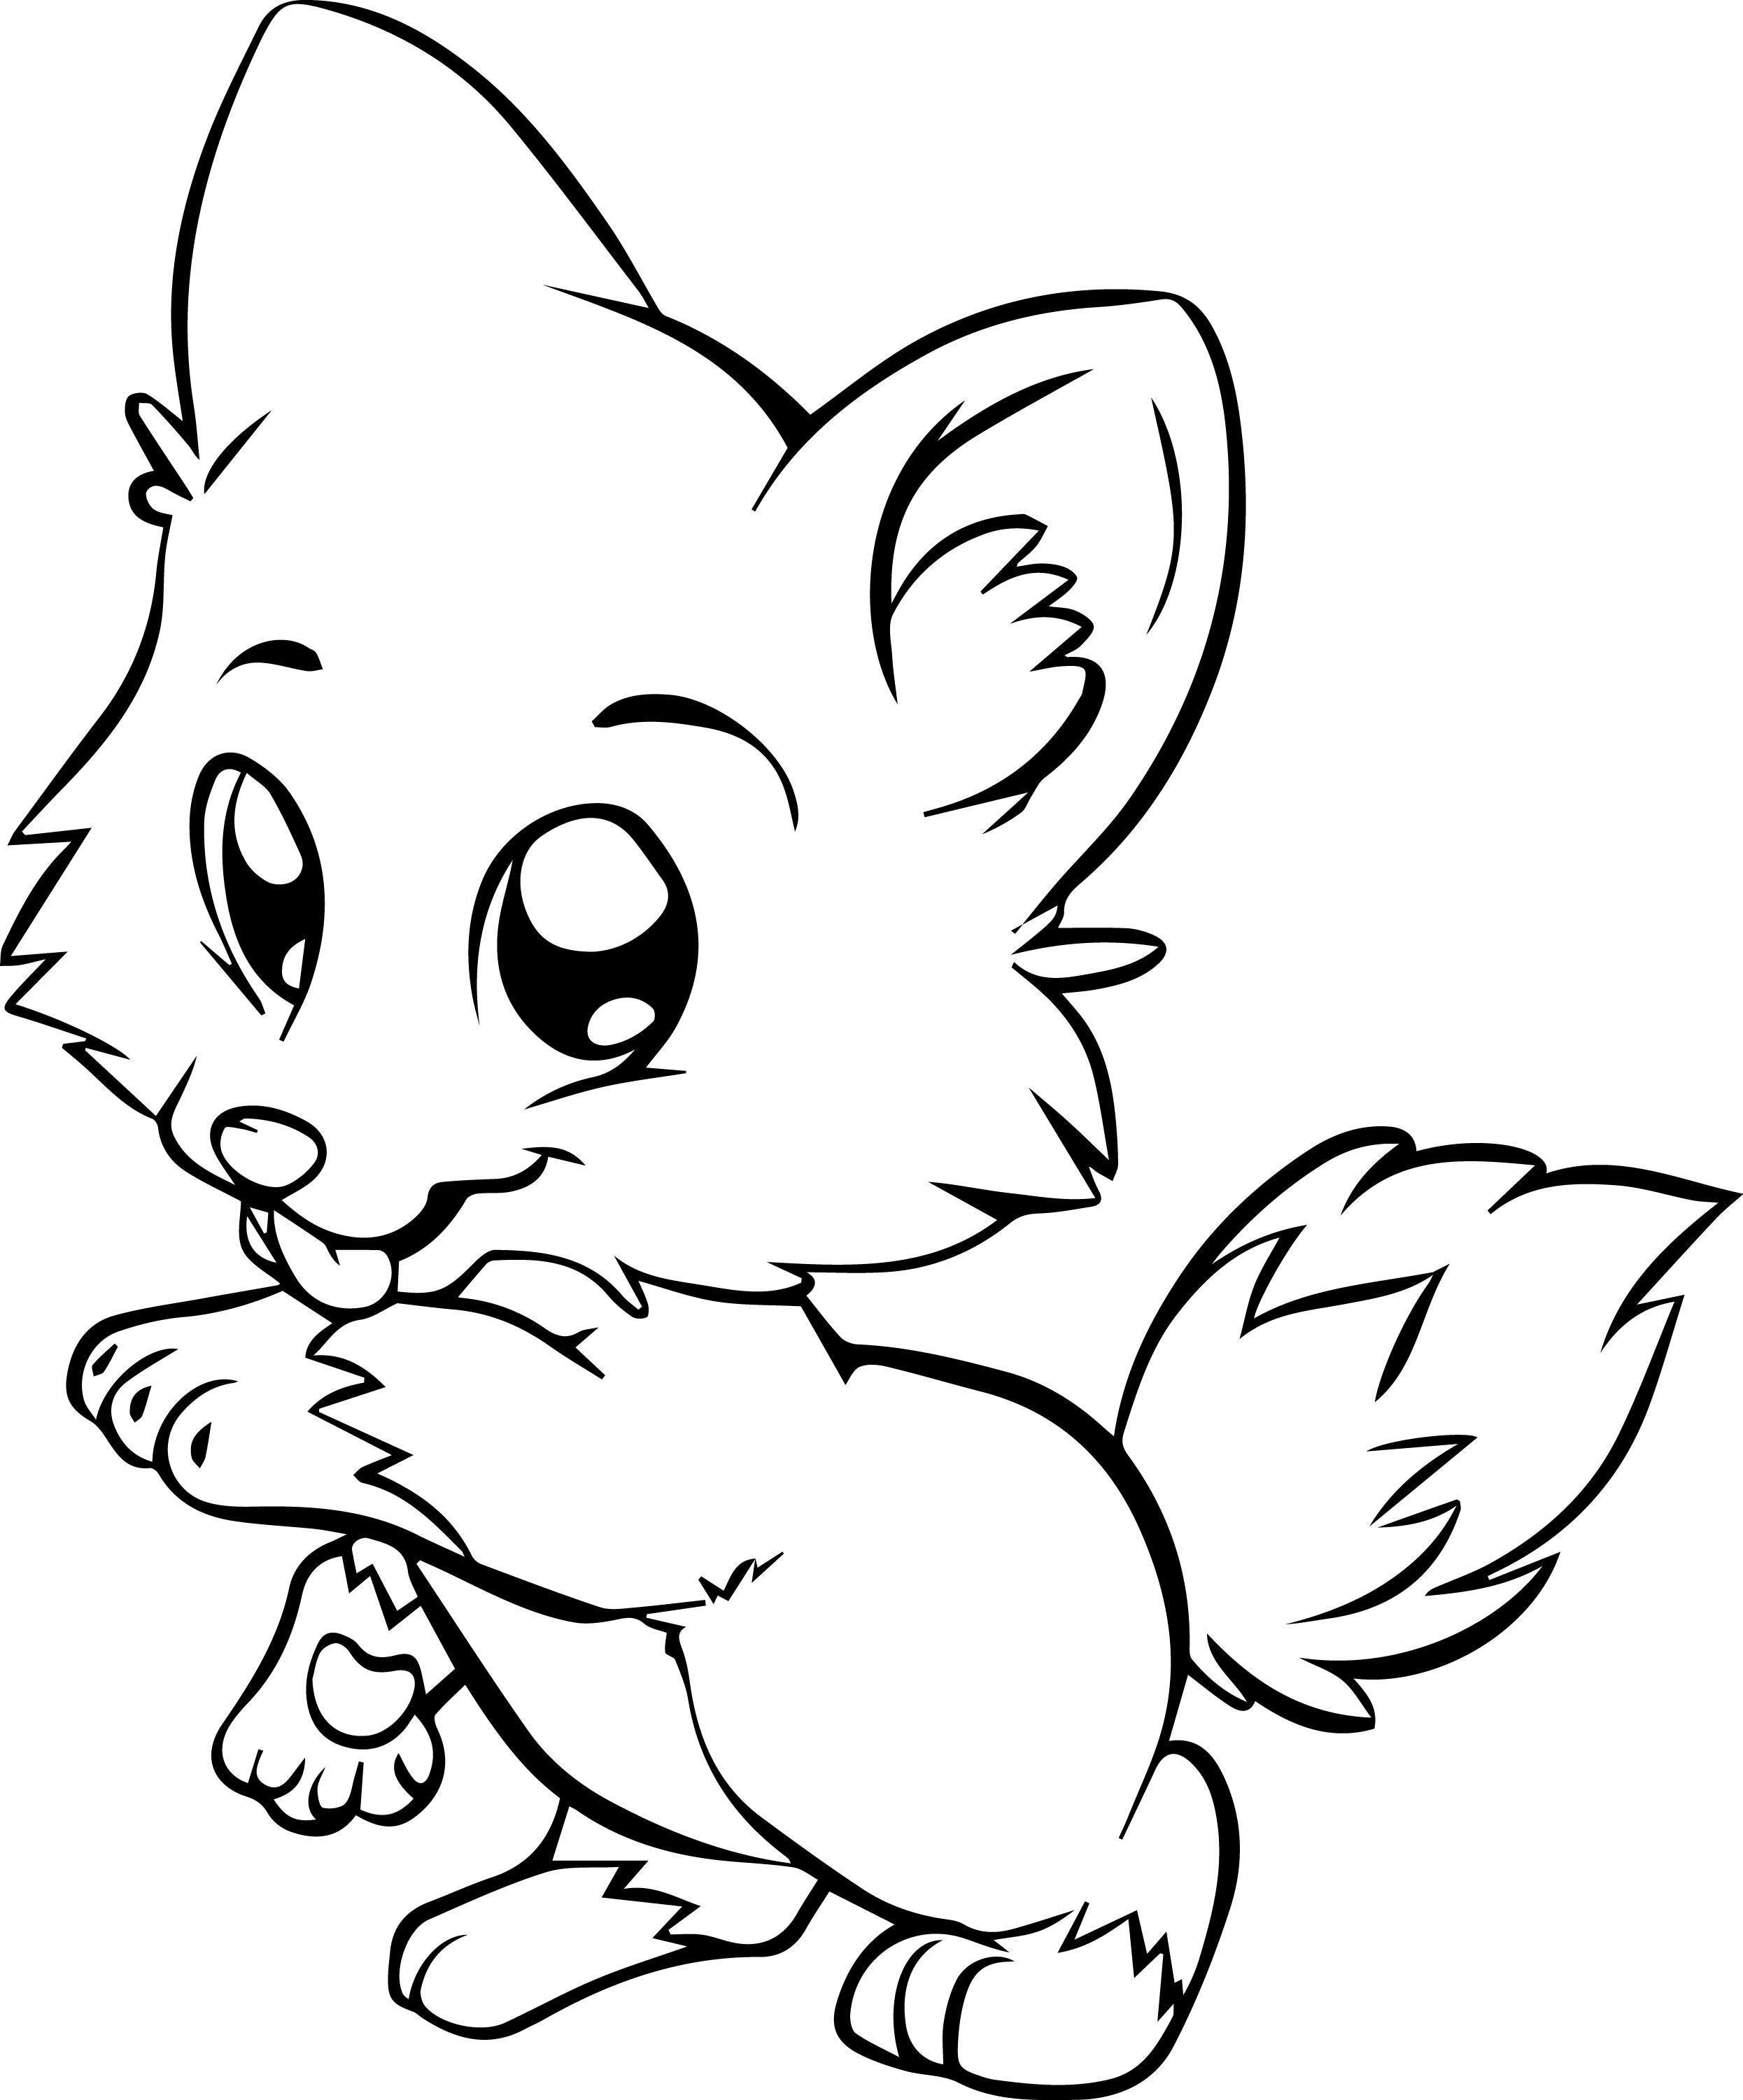 2491x3002 Dog House Coloring Page Acpra